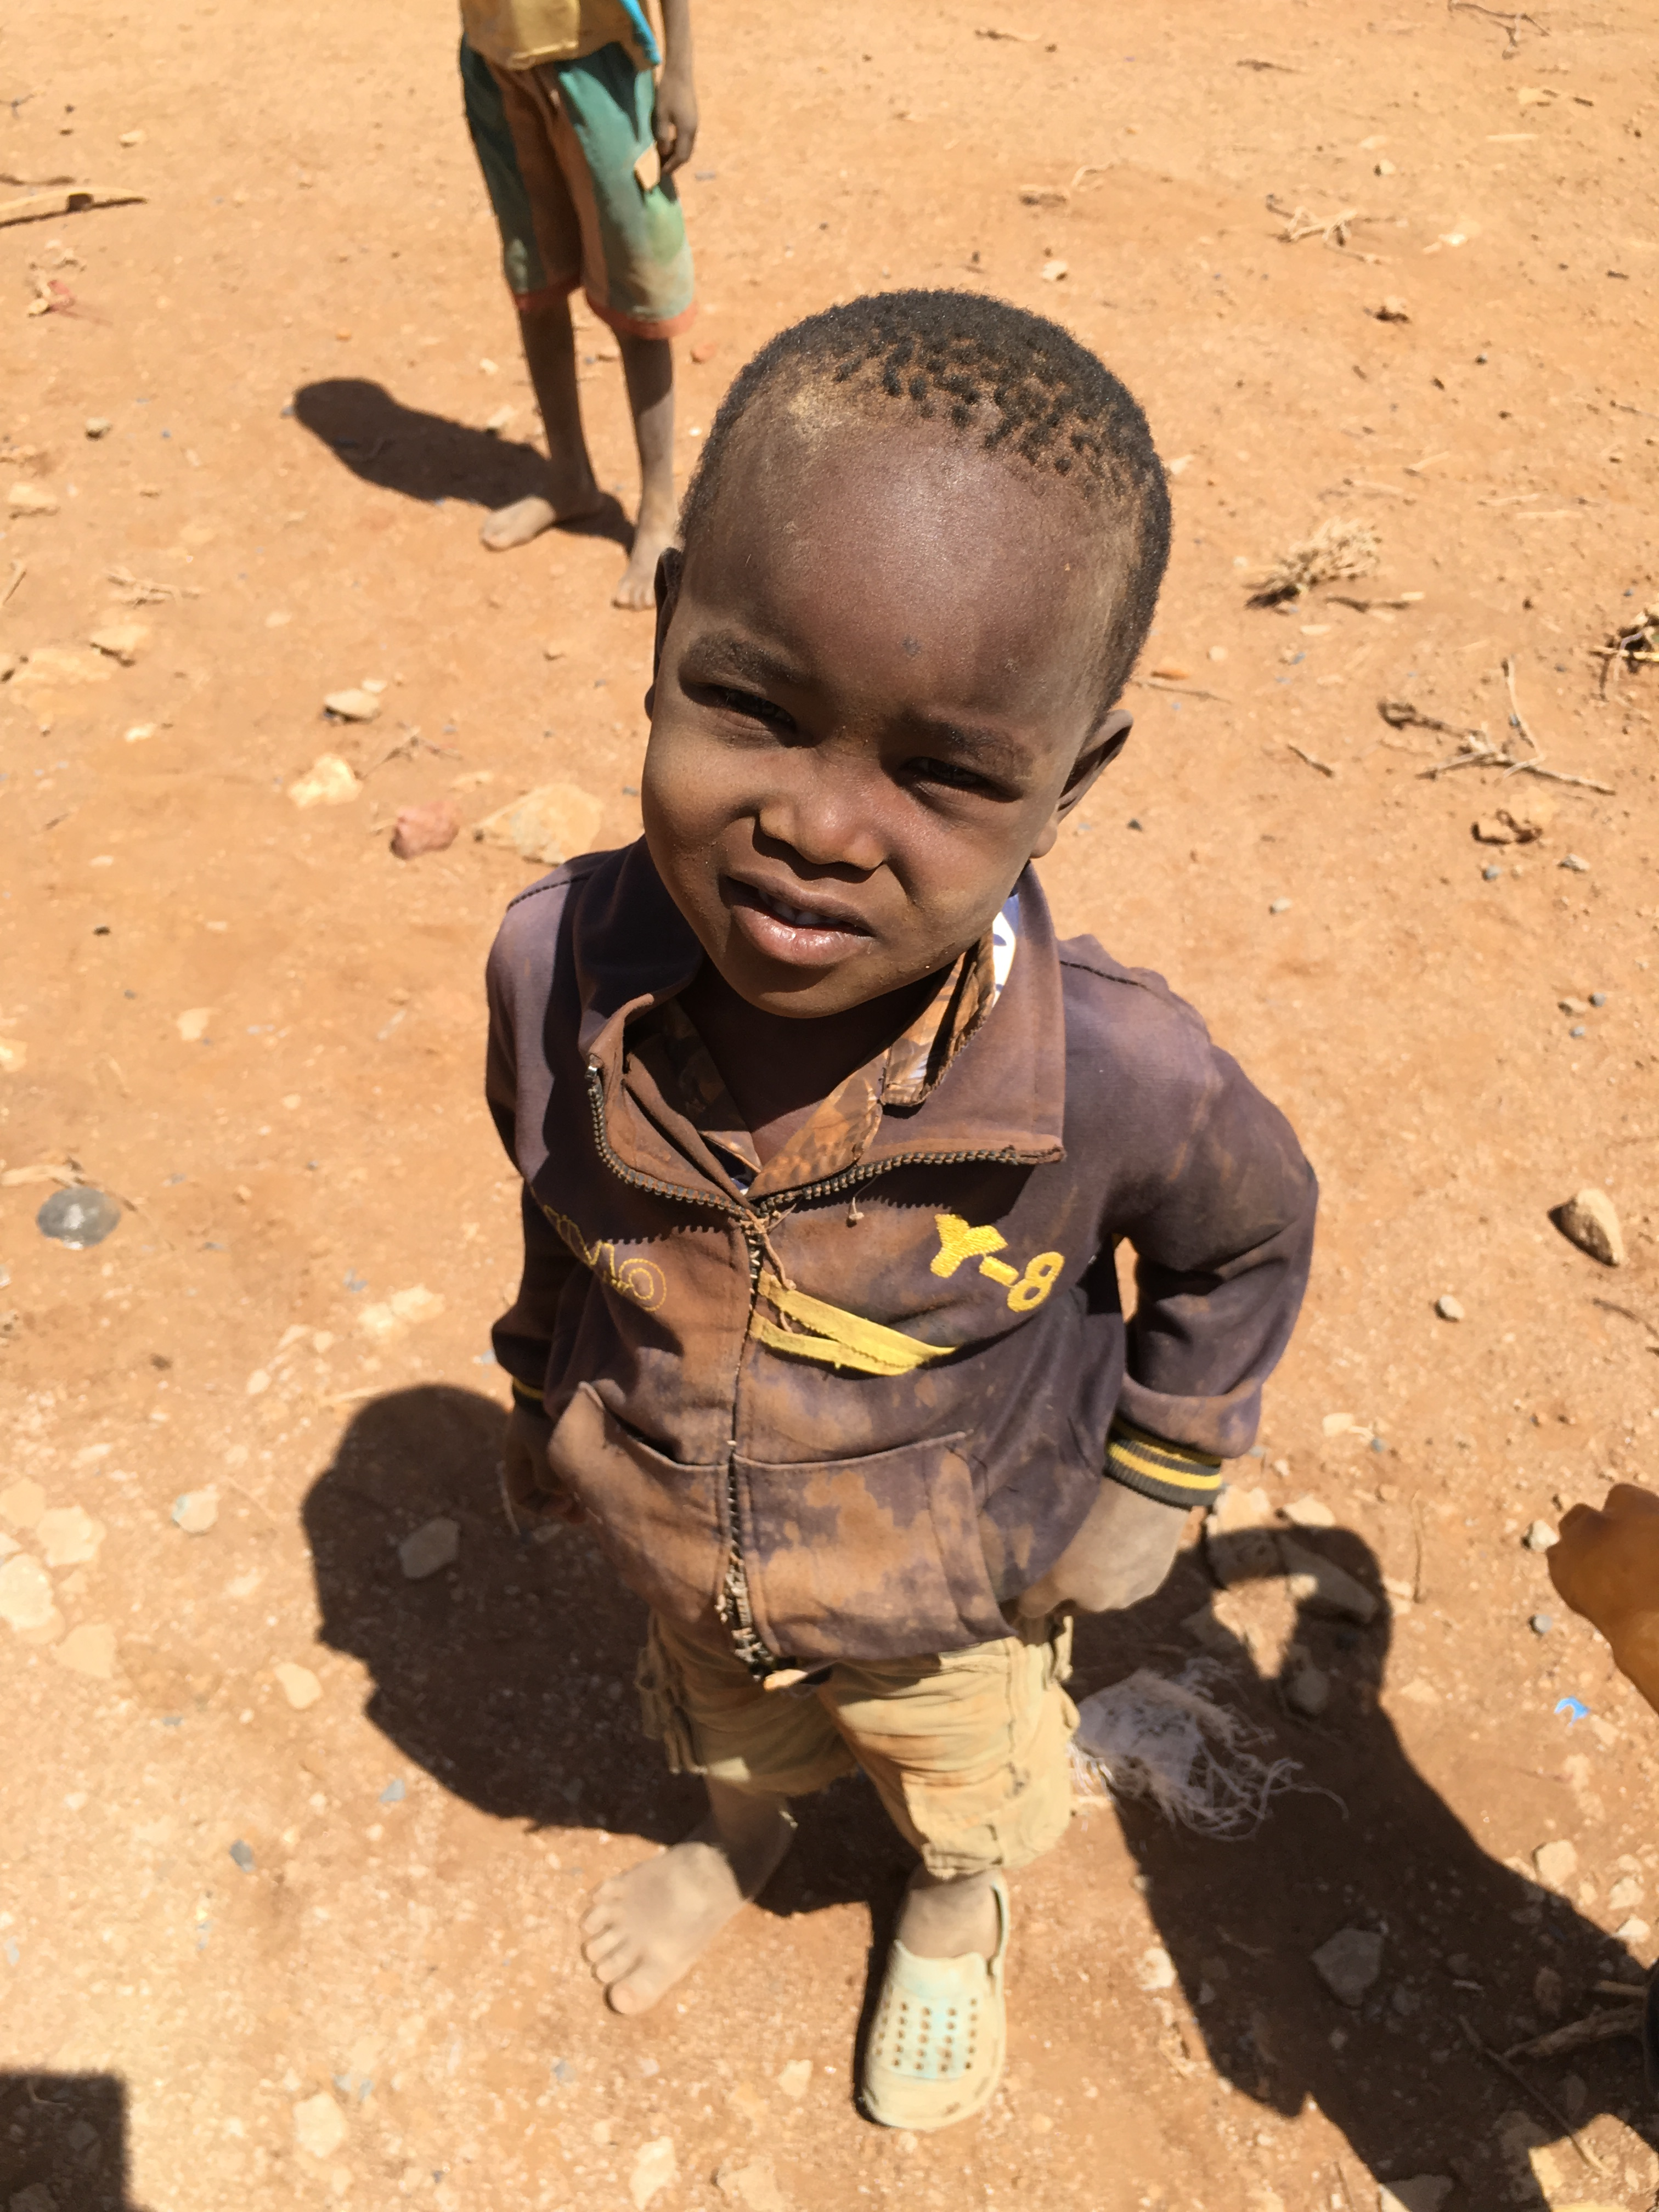 Refugee child in Africa